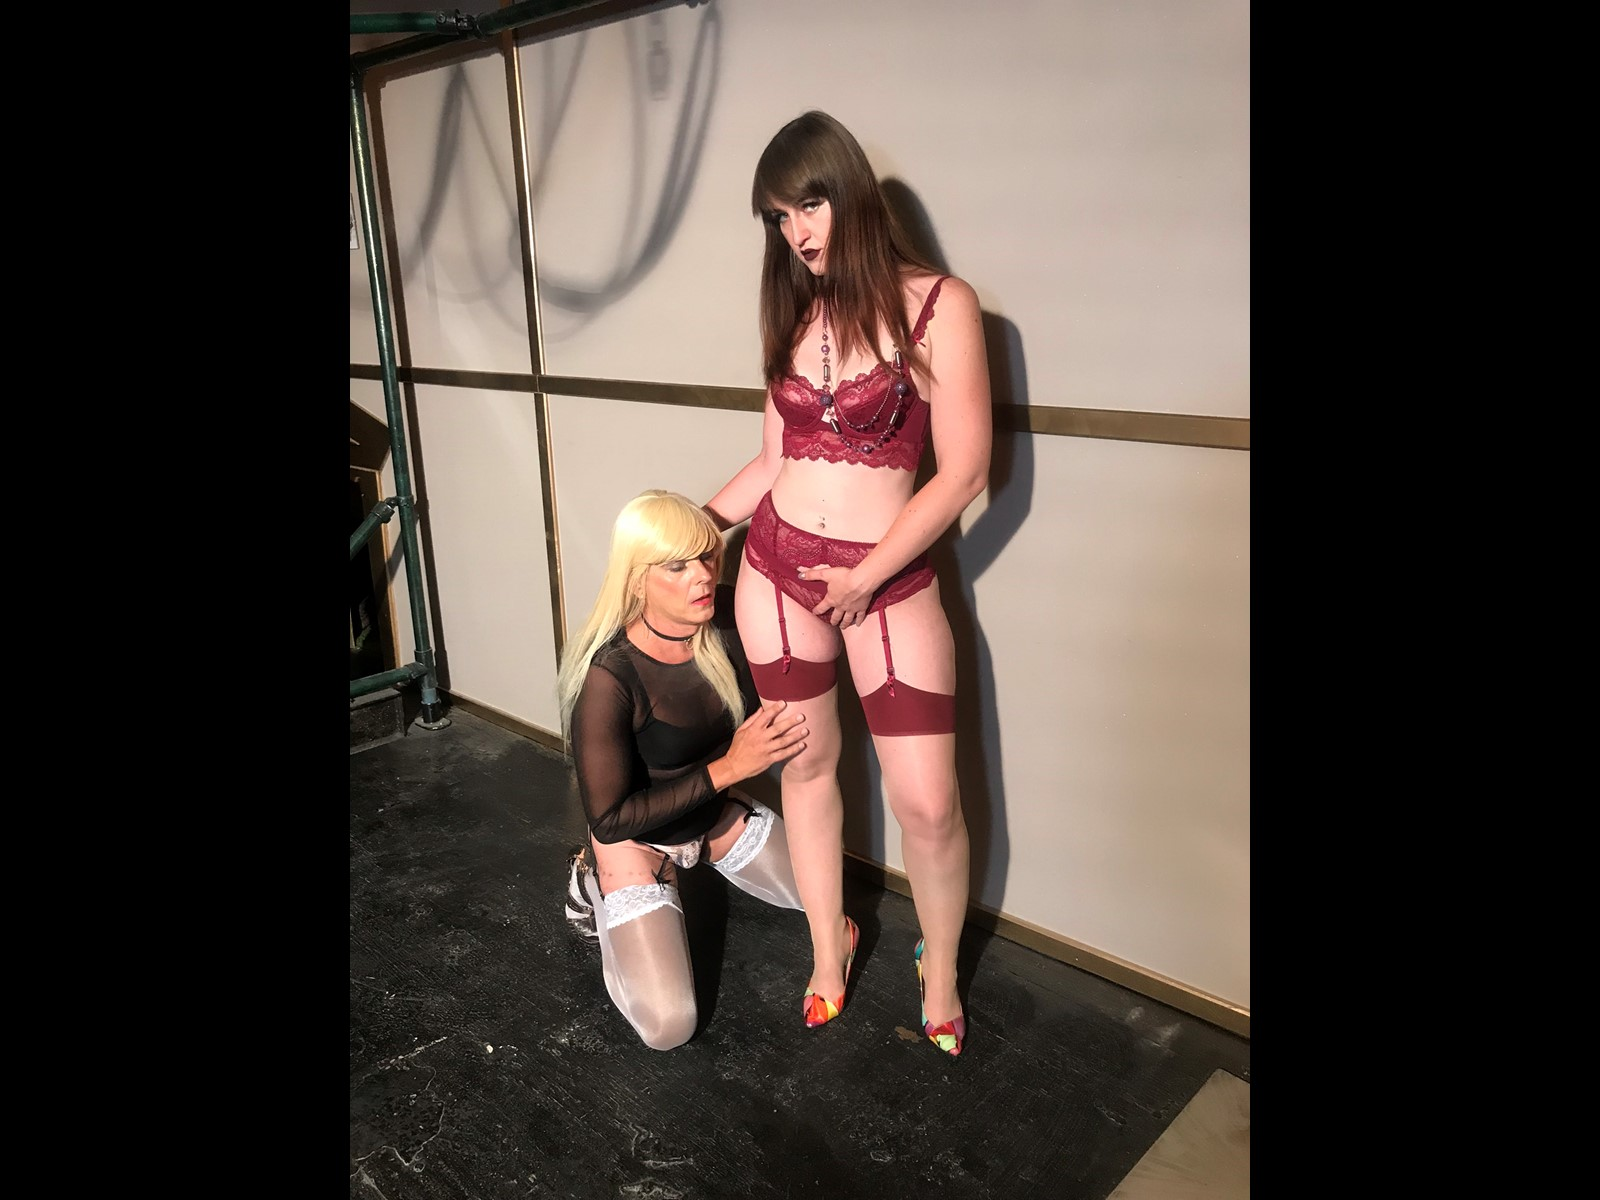 Playing with Kinky Lady Clara in lingerie and stockings - blonde and brunette